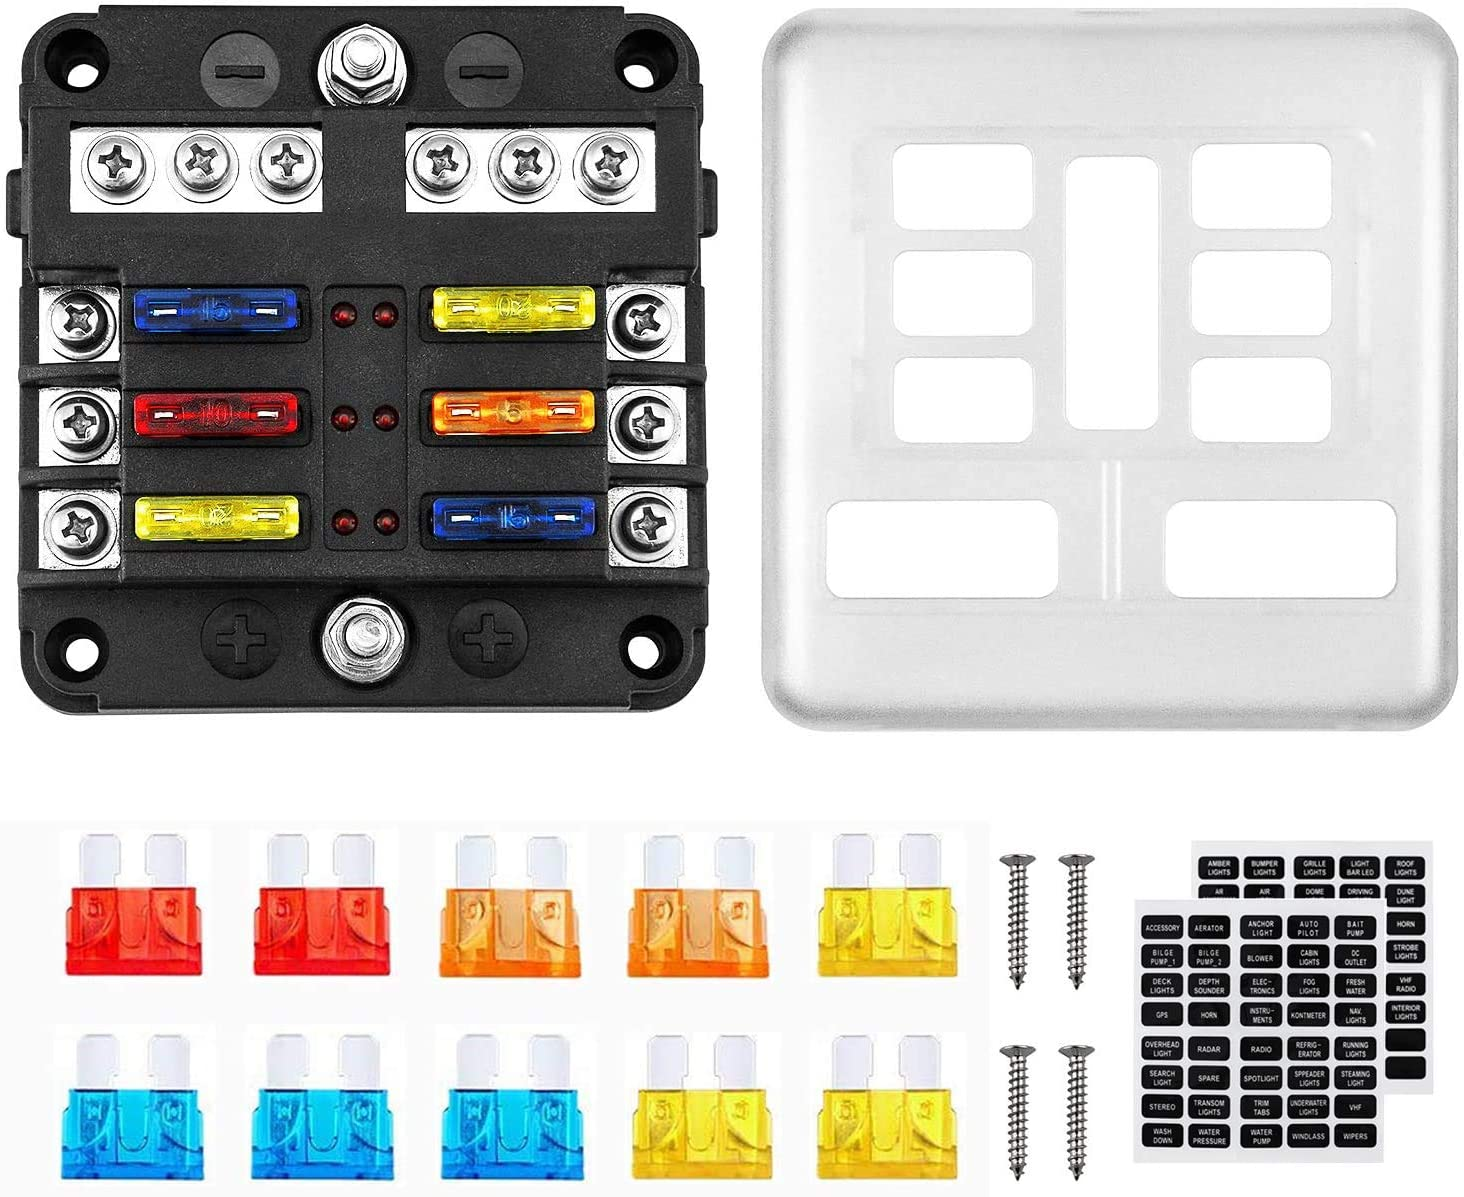 [DIAGRAM_4FR]  Amazon.com: Kohree 6 Way 12V Blade Fuse Block 12 Volt Waterproof Fuse Box  Holder, 6 Circuit W/Negative Bus Fuse Box with LED Indicator for 12V/24V  Automotive Truck Boat Marine RV Van Vehicle: | 12 Volt Fuse Box |  | Amazon.com